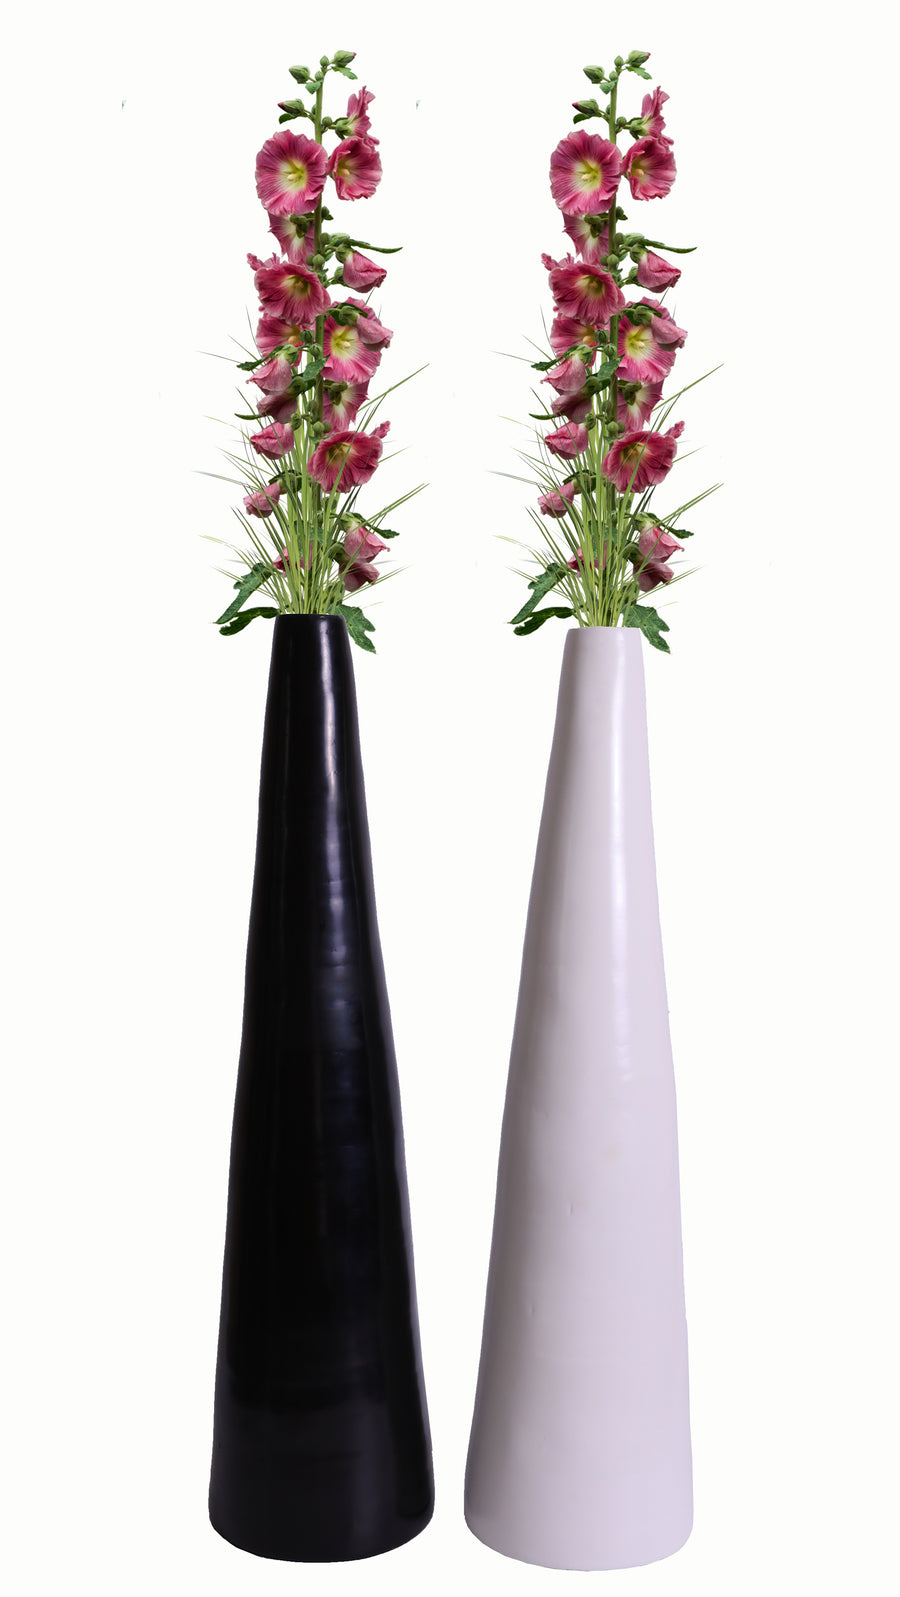 30 in. Spun Bamboo Contemporary Tall Floor Vase